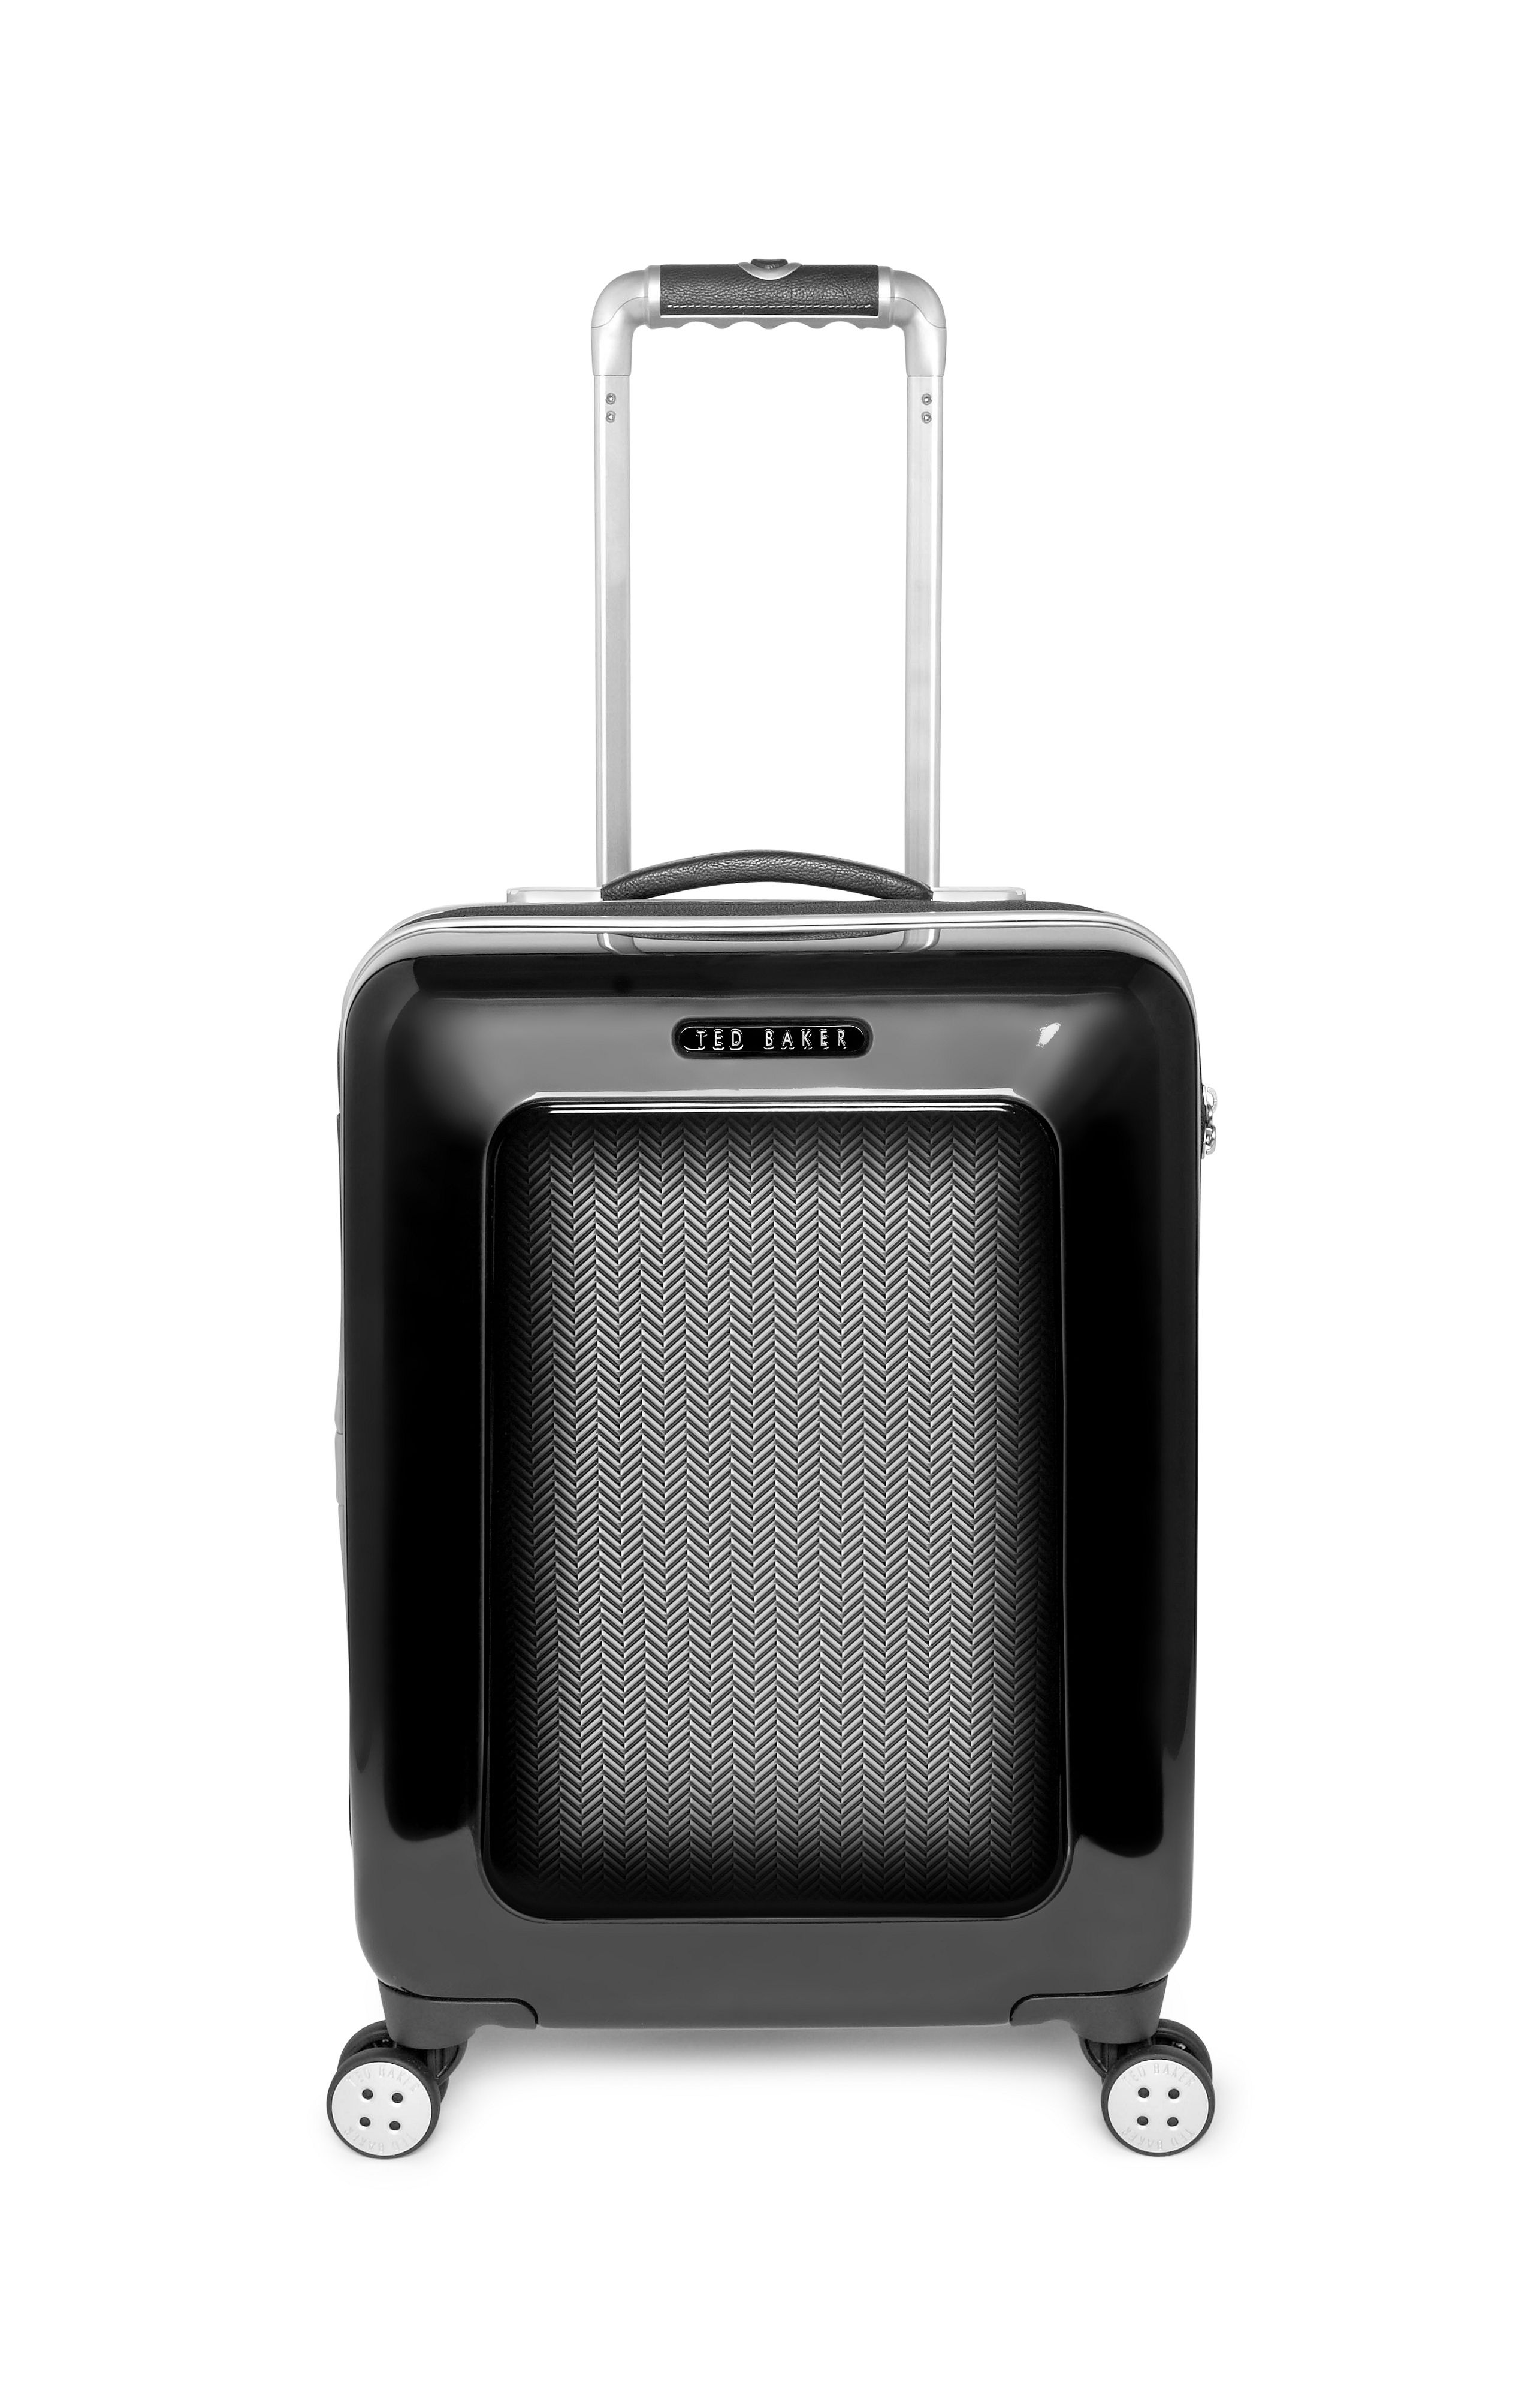 Herringbone black 4 wheel hard cabin rollercase